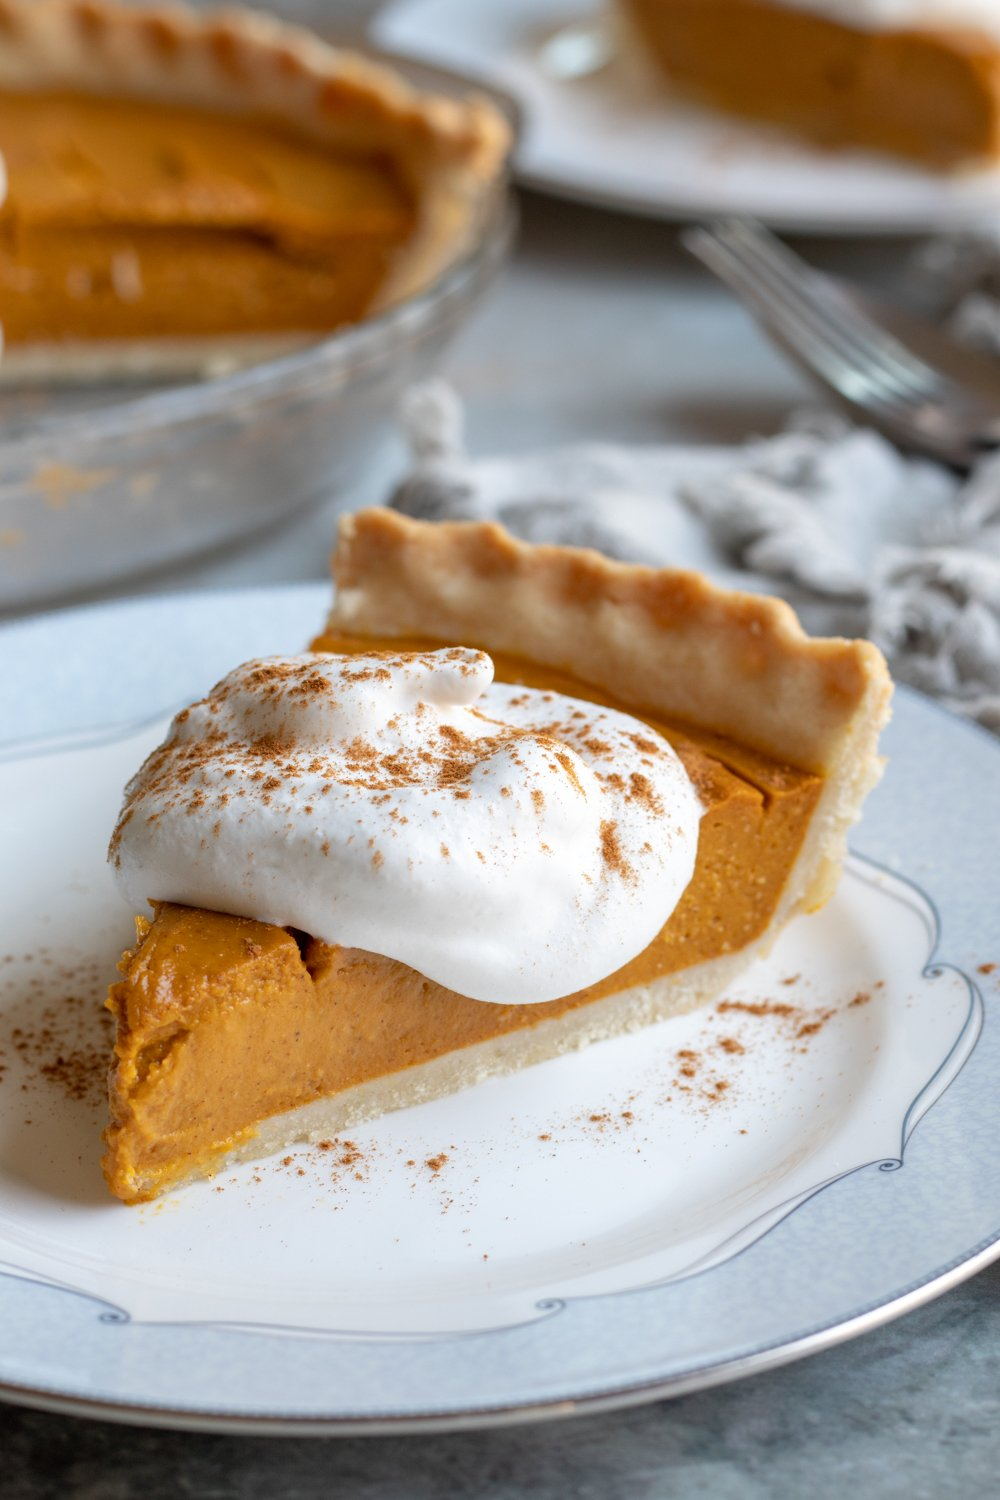 a slice of healthy and easy vegan pumpkin pie on a small plate.